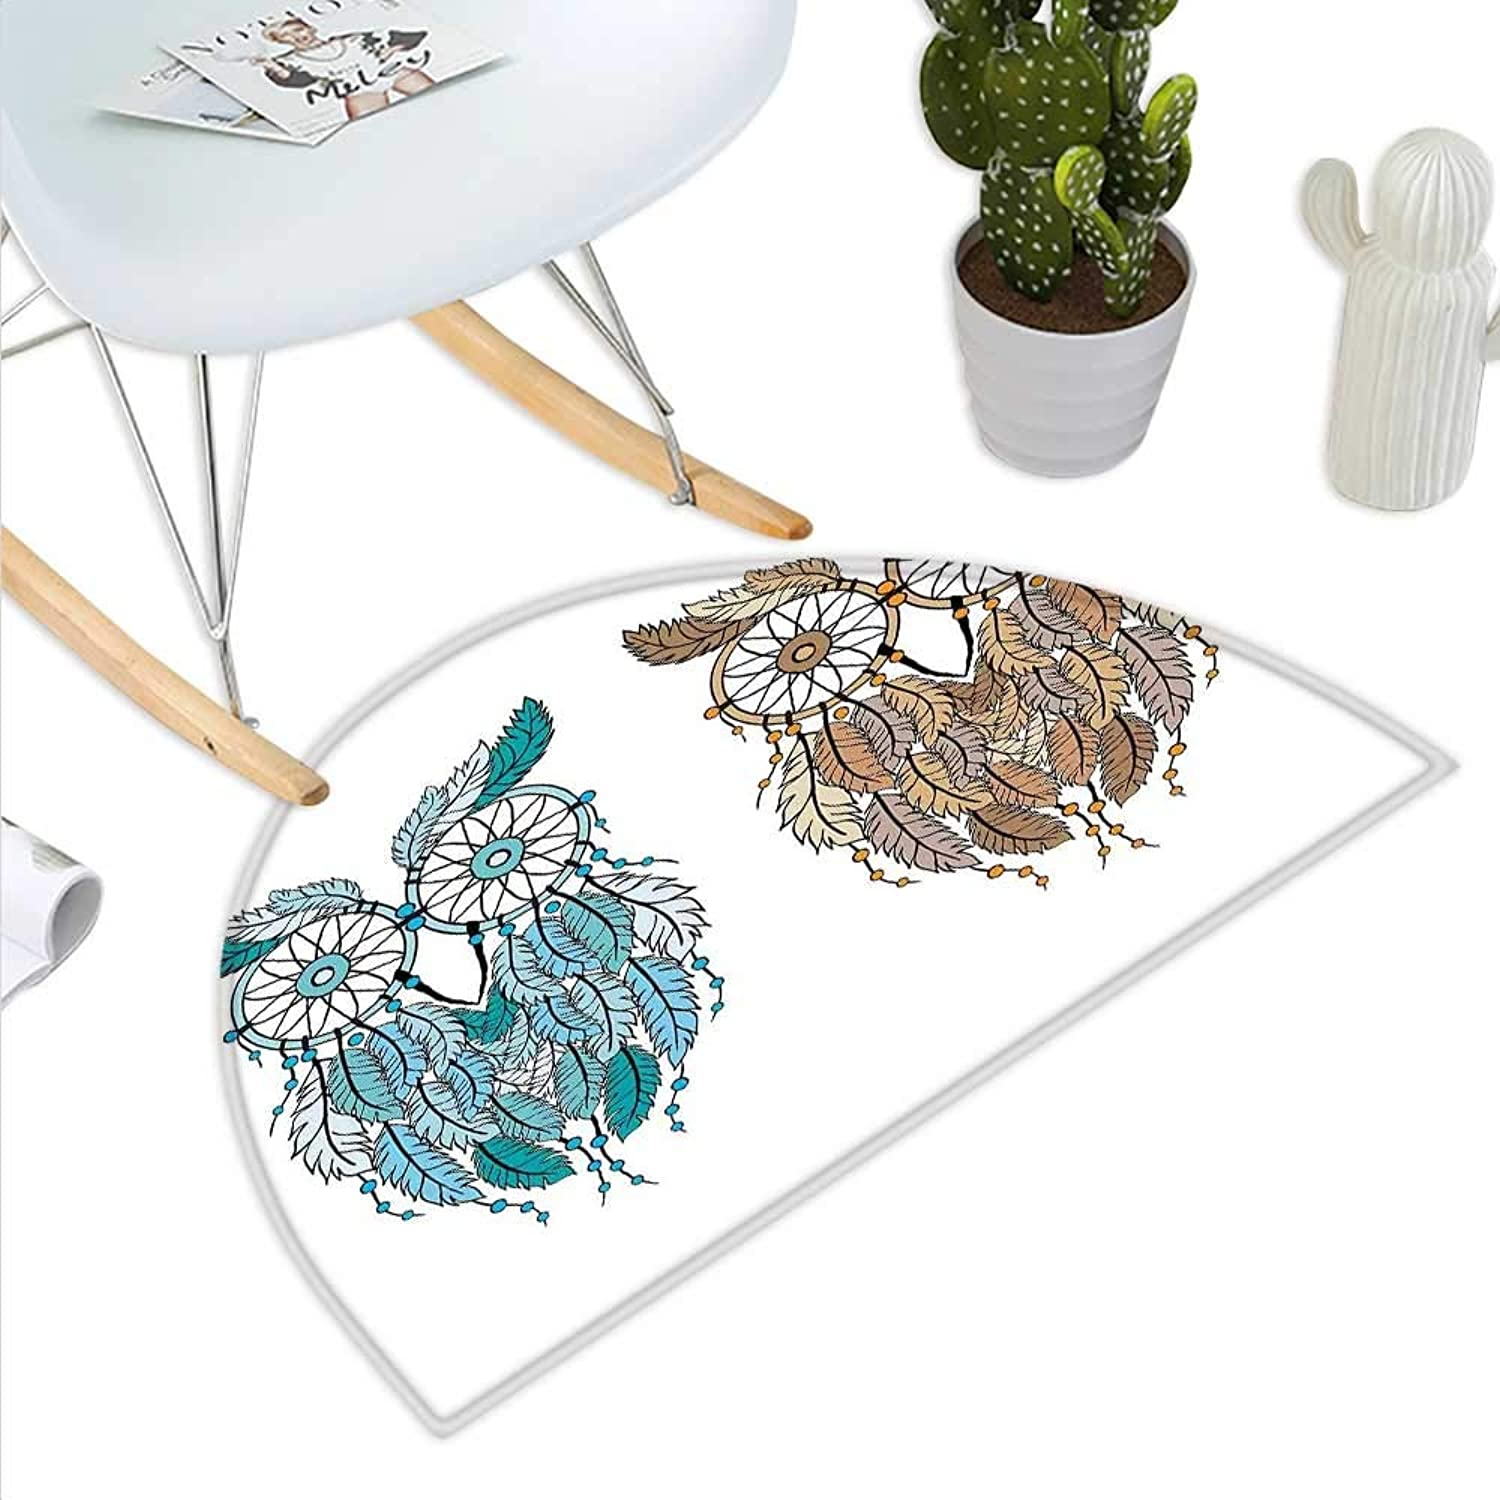 Owl Semicircle Doormat Dreamcatcher Style Owl Tribal Ethnic Features Magic Farsighted Birds Artsy Print Halfmoon doormats H 39.3  xD 59  Cream White Teal